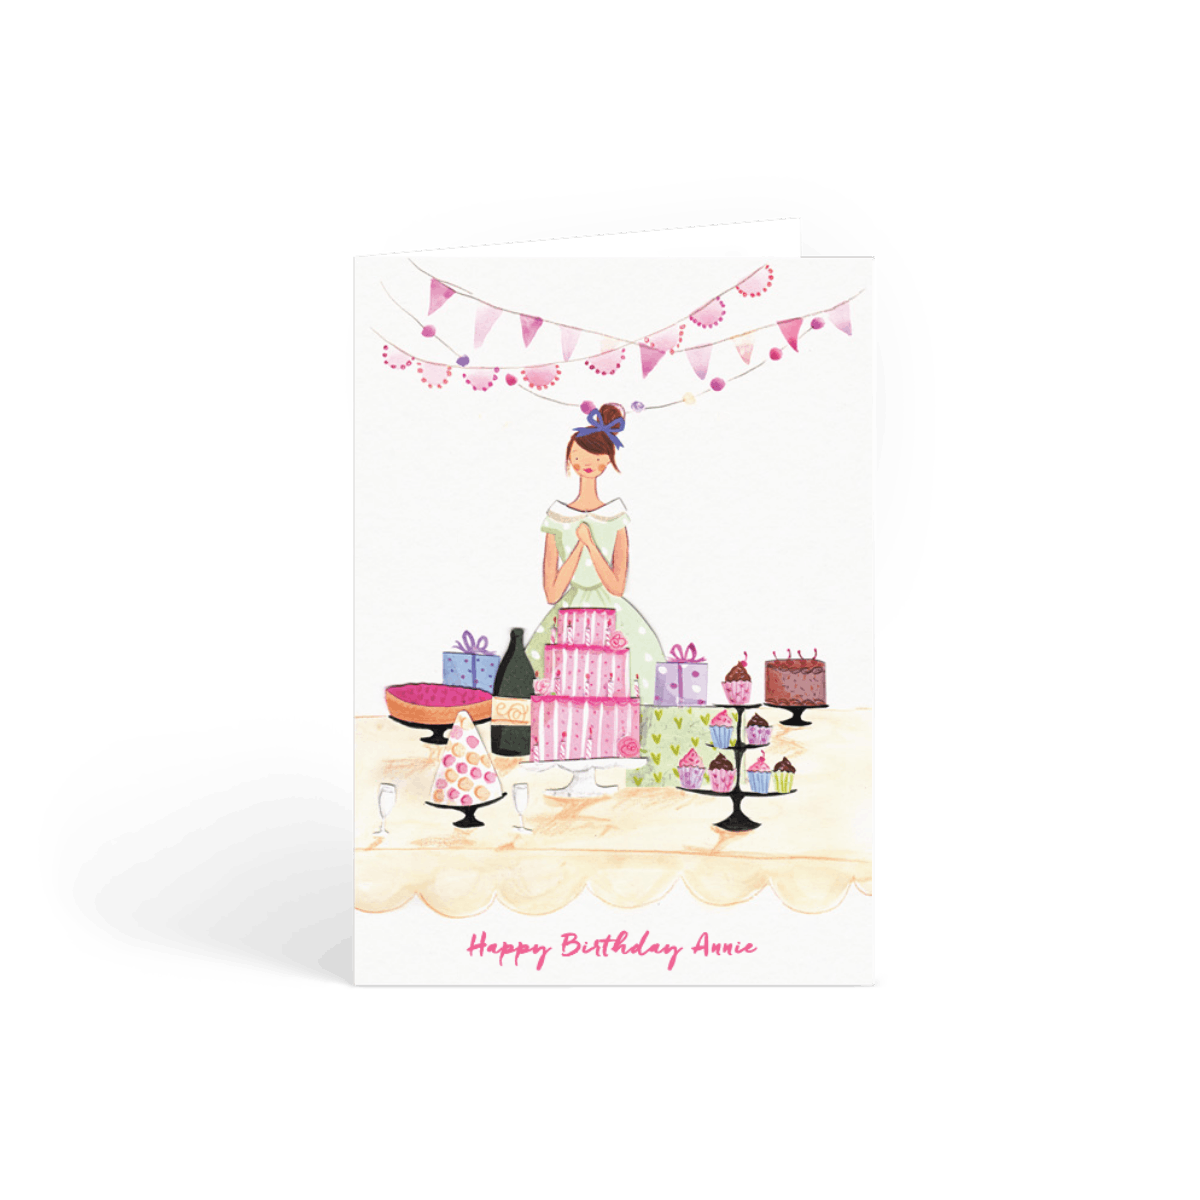 Https%3a%2f%2fwww.papier.com%2fproduct image%2f51107%2f2%2fbirthday party girl 12520 front 1540394468.png?ixlib=rb 1.1